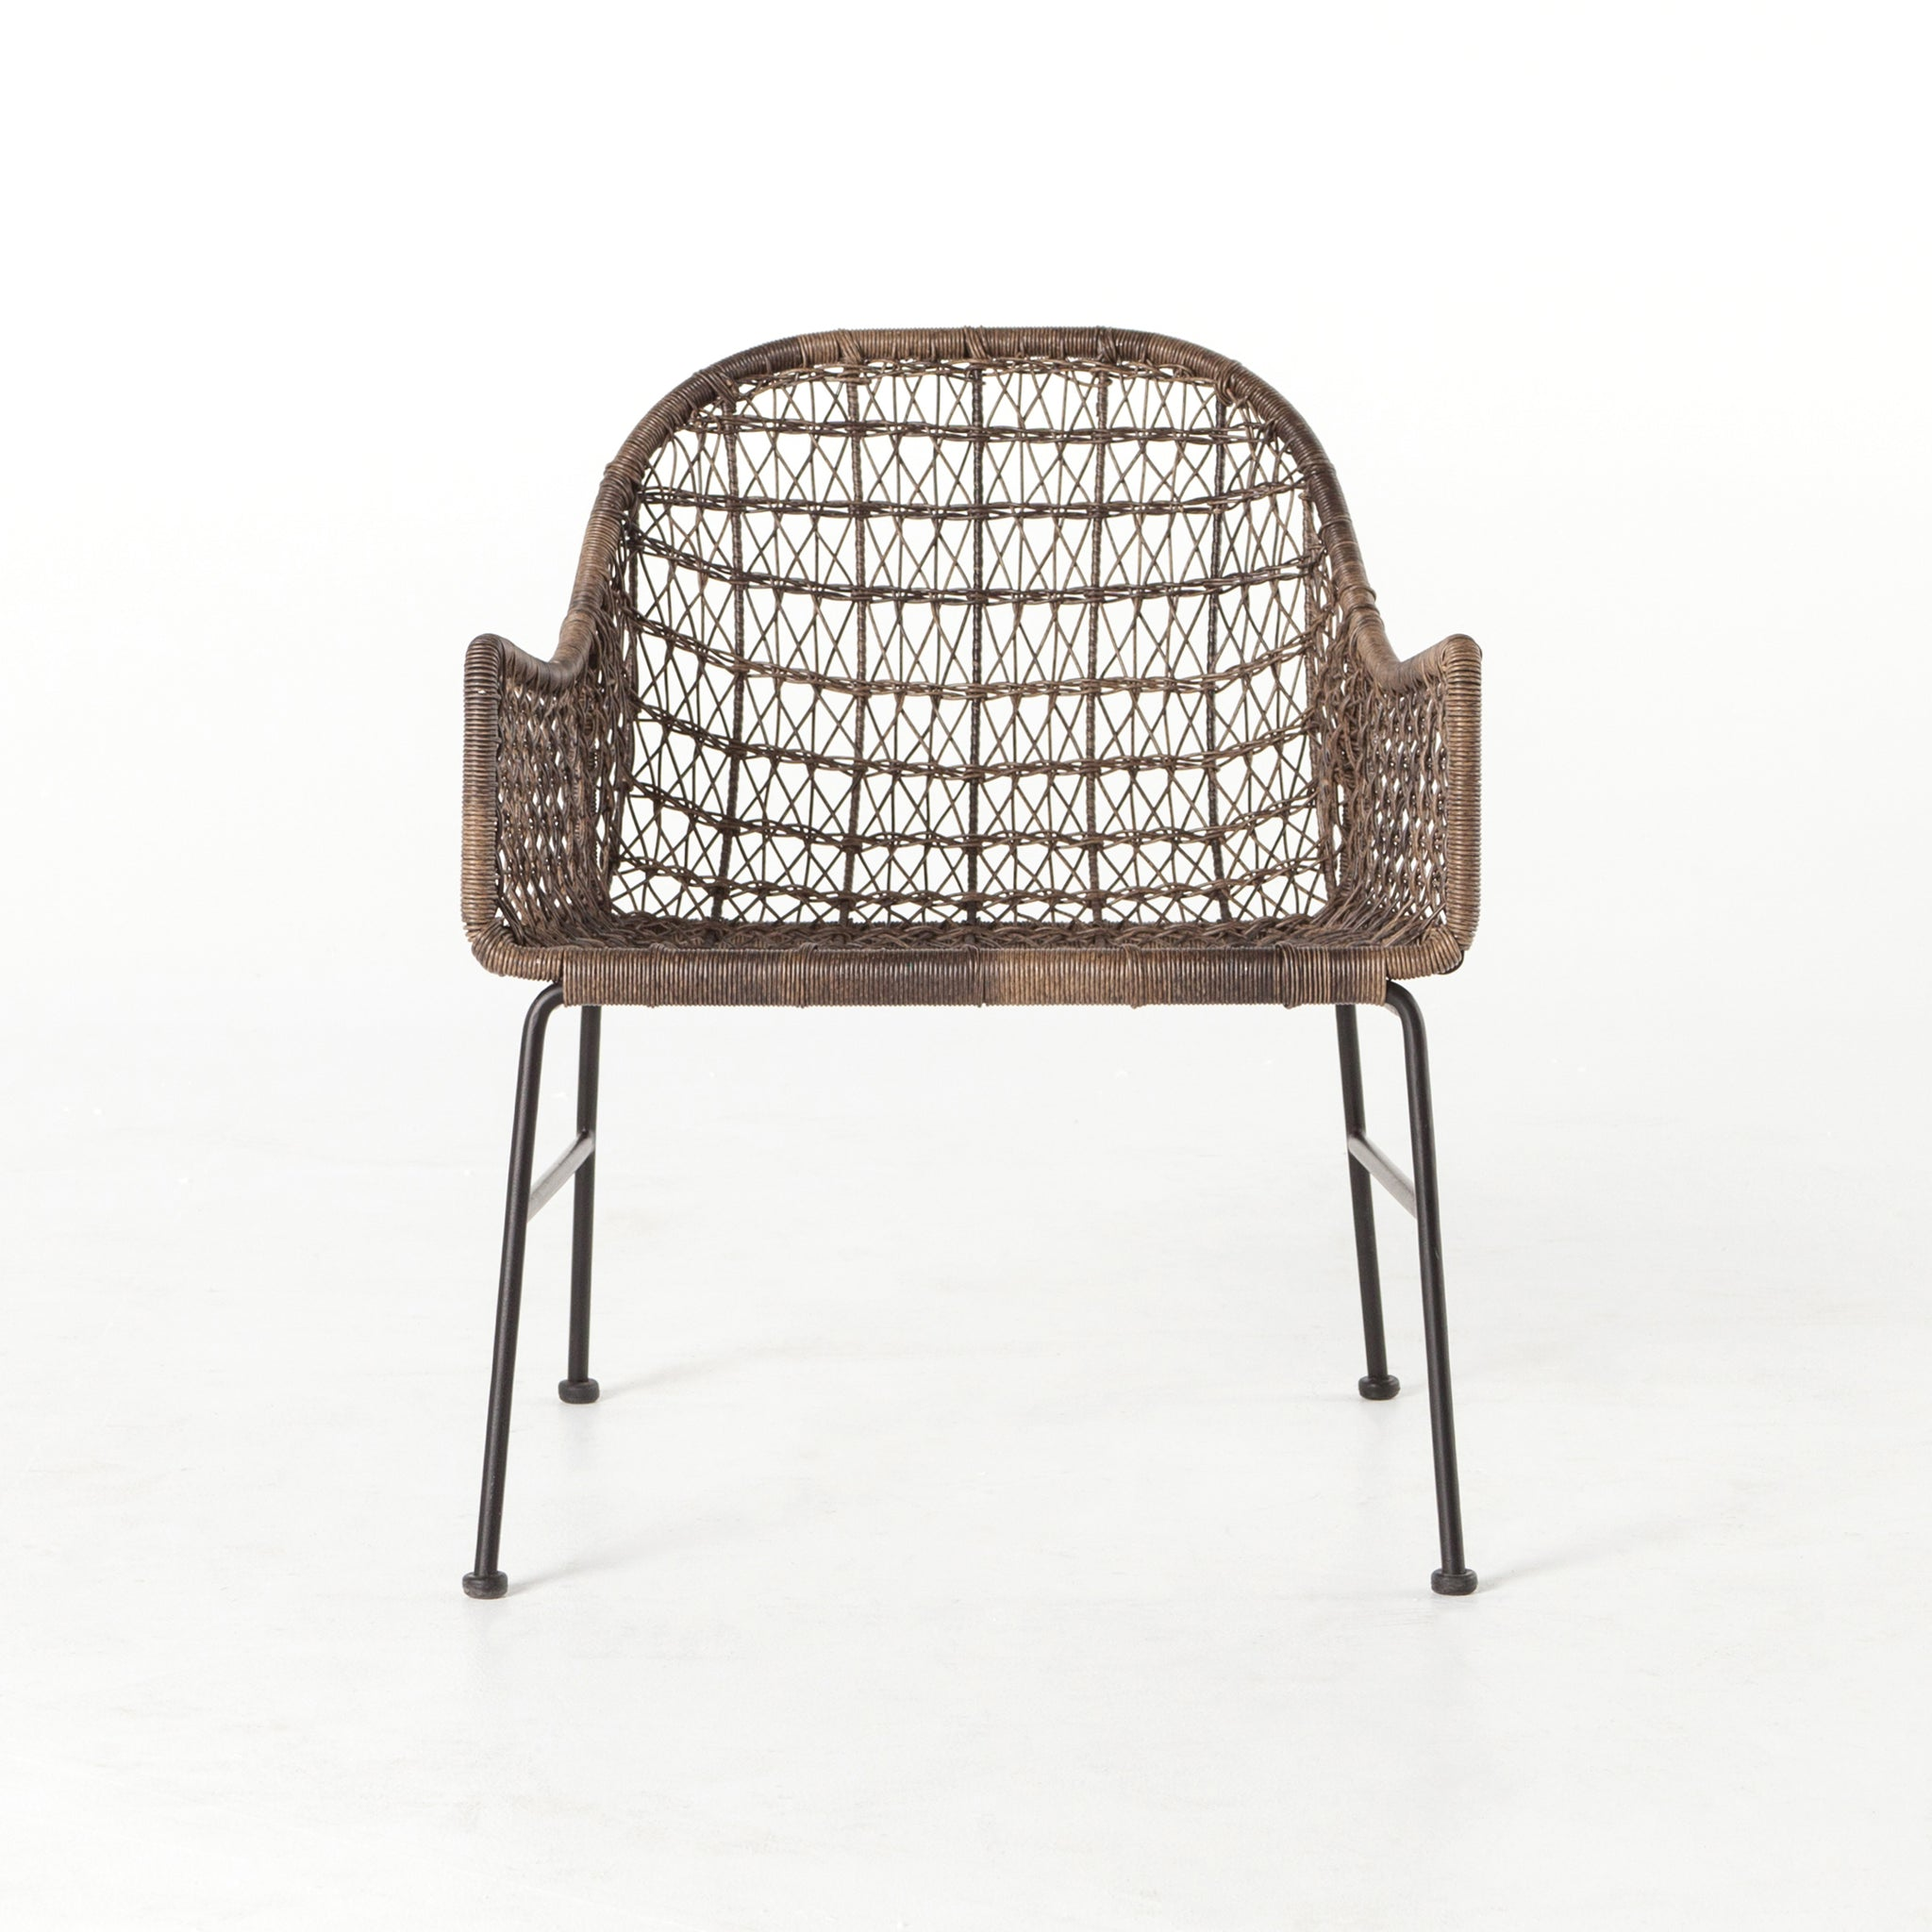 silver brushed metal chair woven. Bandera Outdoor Woven Club Chair Silver Brushed Metal